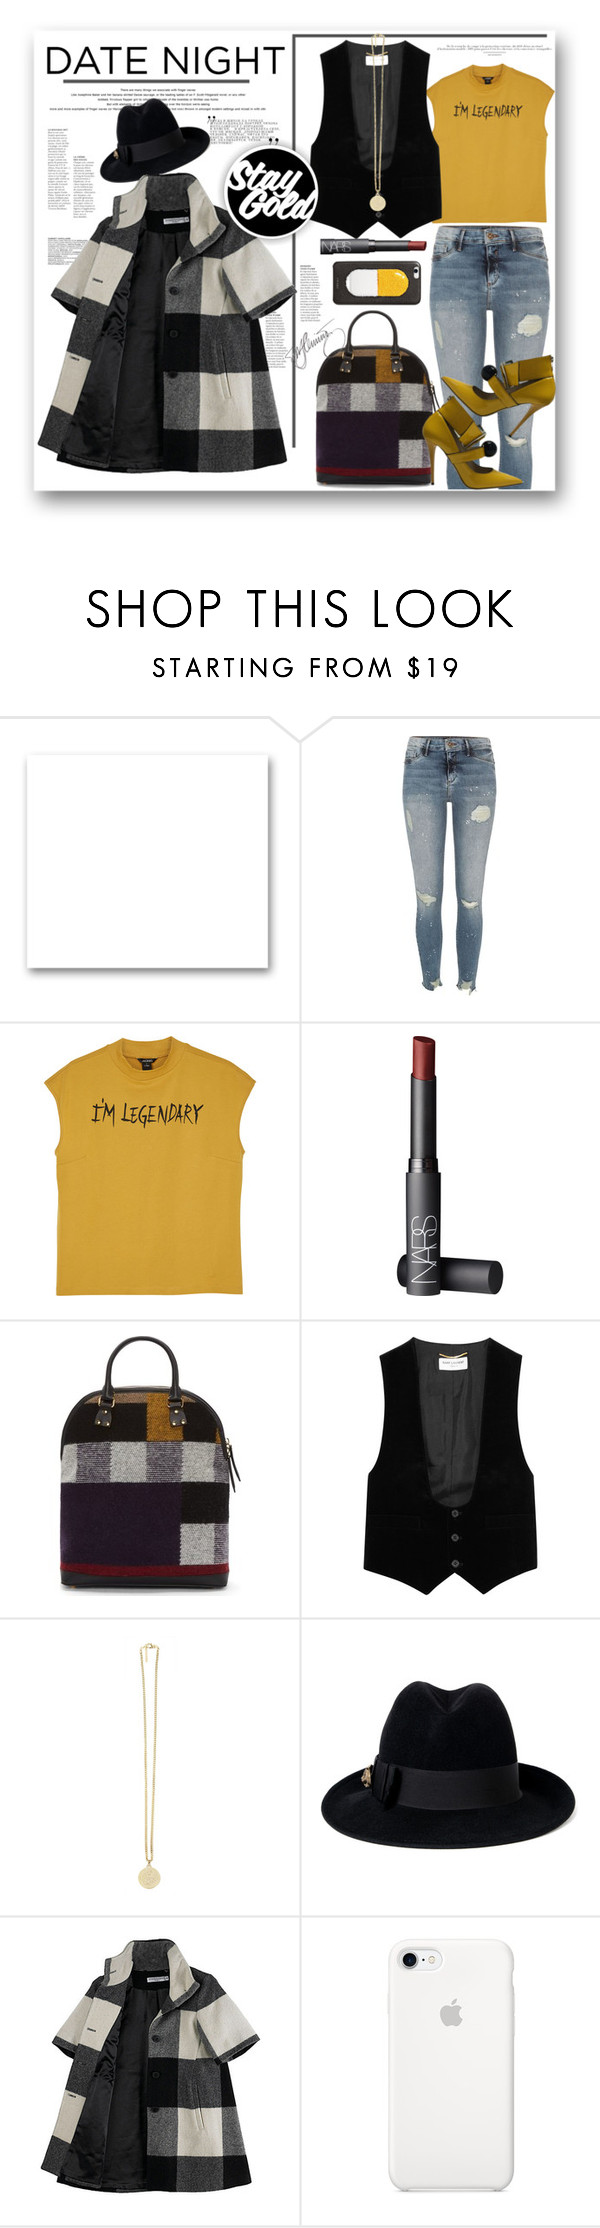 """""""date night legend"""" by mercimasada ❤ liked on Polyvore featuring St. John, River Island, Monki, NARS Cosmetics, Burberry, Yves Saint Laurent, Givenchy, Gucci, Opening Ceremony and OKA"""